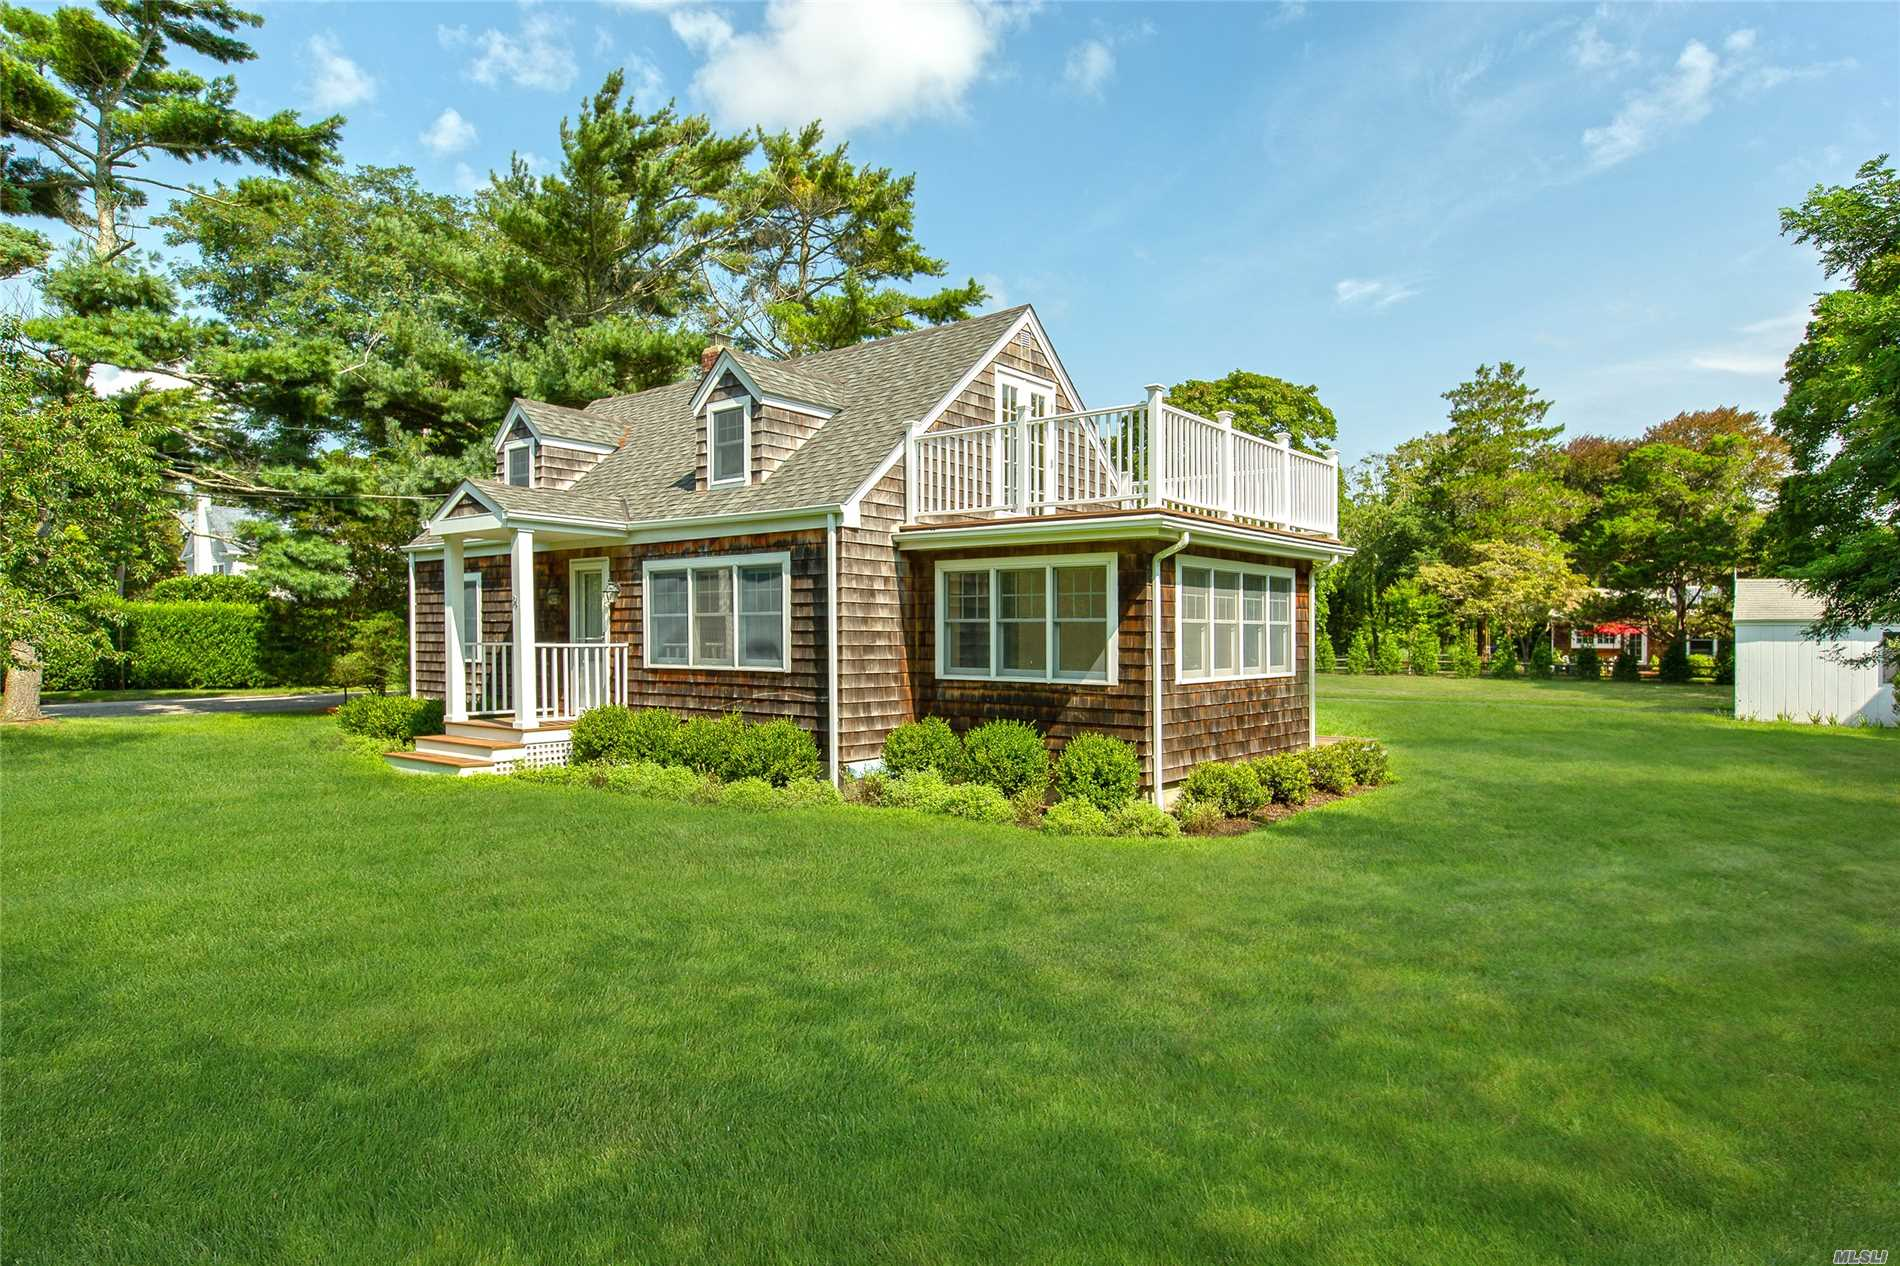 Located South Of The Highway In The Estate Section Of East Quogue With A Deeded Right Of Way To The Bay. This Home Was Fully Updated In 2012 With Three Bedrooms, Two Full Bathrooms, Kitchen, Living Room, Office And Sun-Room Which Can Be Used As A Dining Room, One Car Garage, Full Basement, And A Beautiful Yard With Room For A Pool On .40 Acre. East Quogue Is A Short Drive To Both Southampton And Westhampton Beach For A Day Of Shopping And Dining. New To The Market And A Must See!